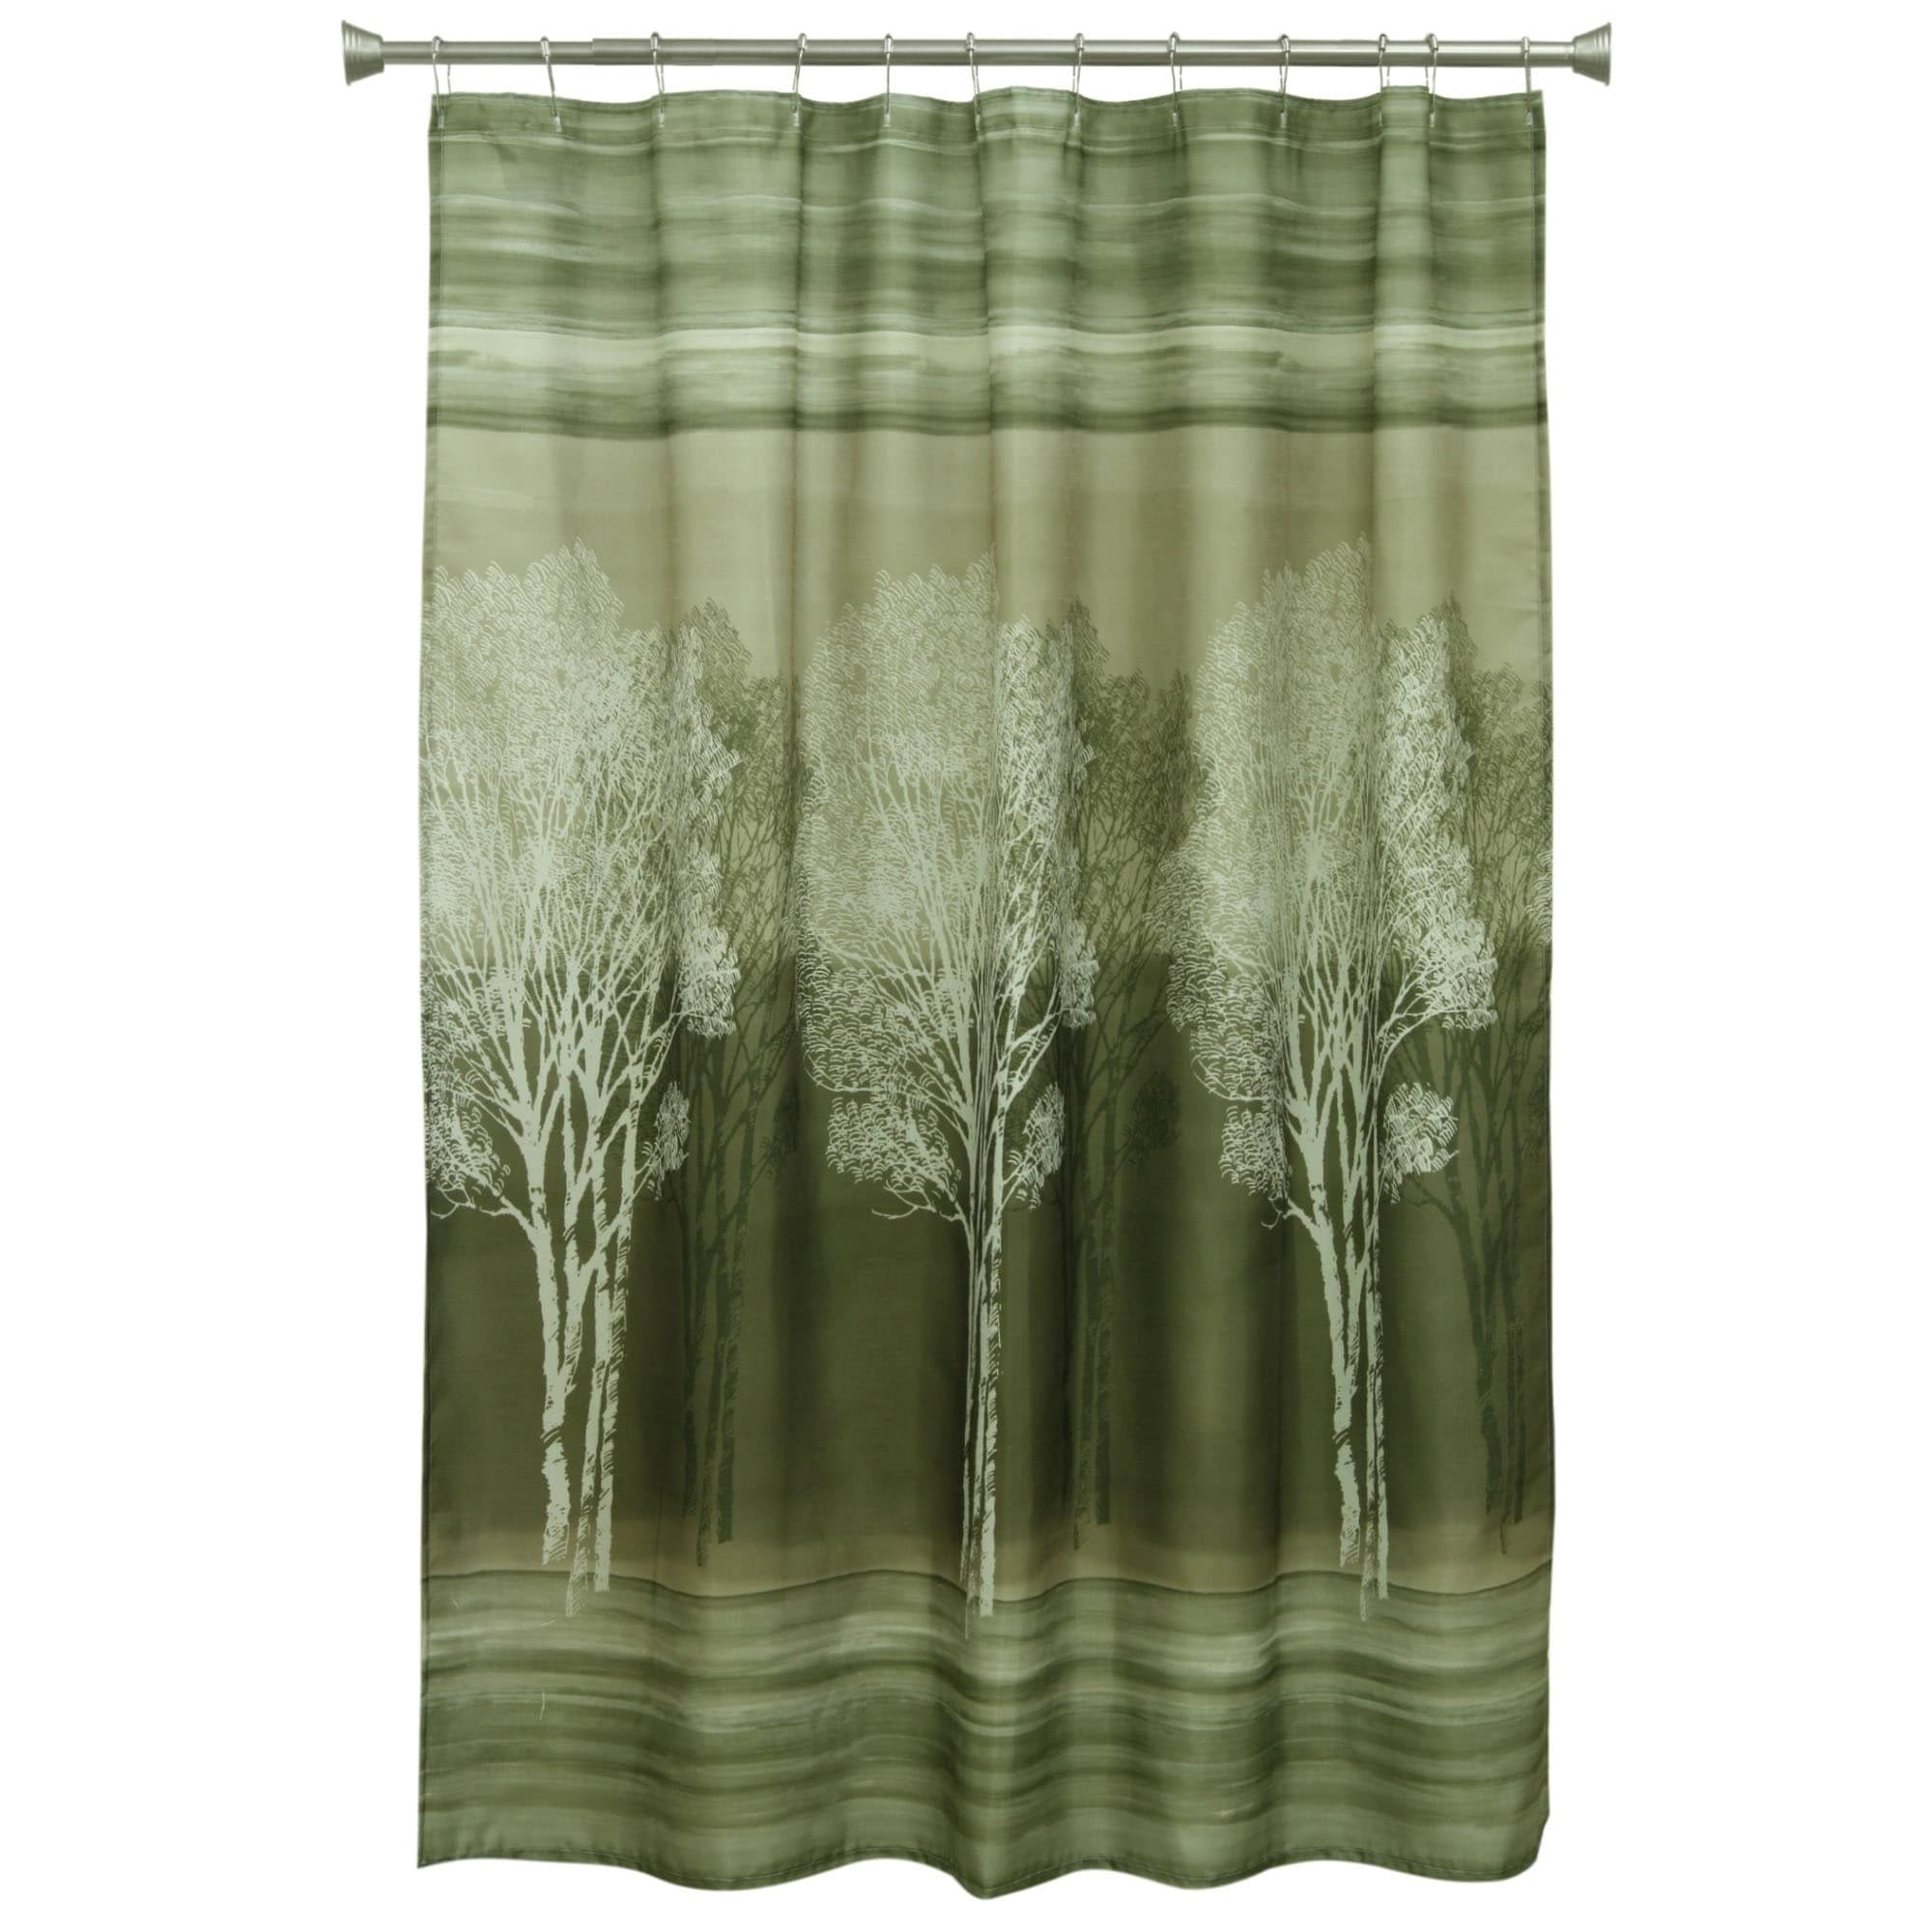 BACOVA Forest Silhouette Fabric Shower Curtain (Forest Si...